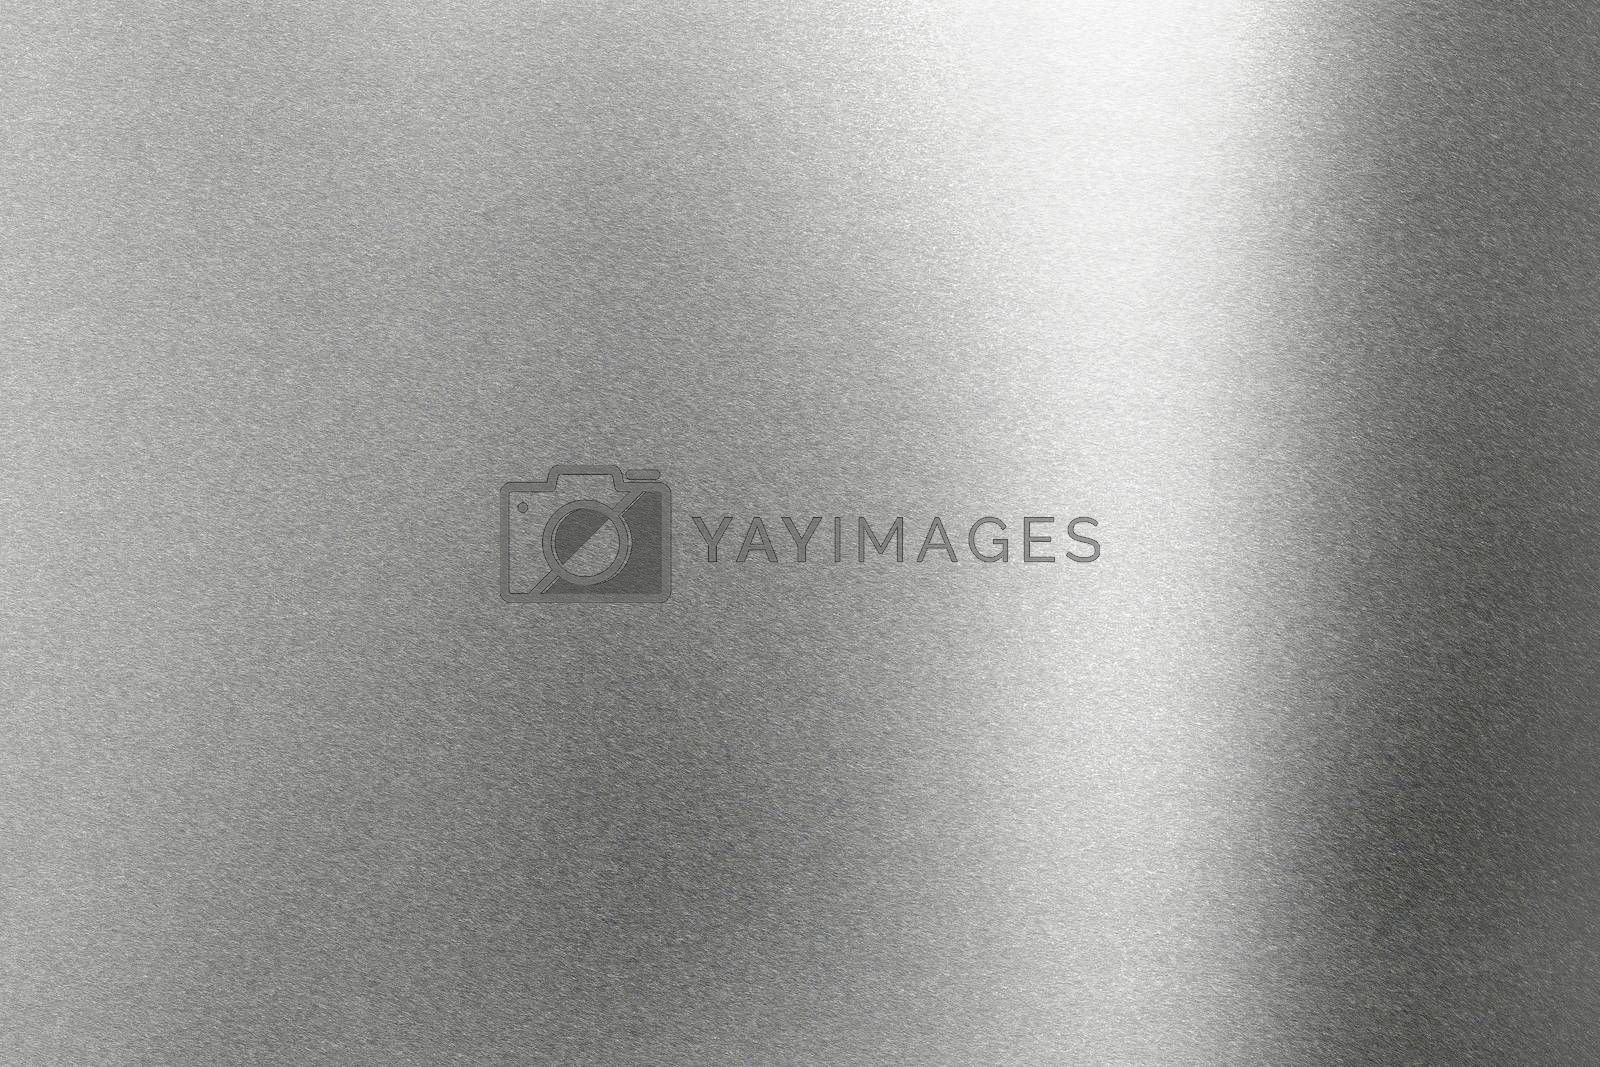 Light shining on rough gray metal wall, abstract texture background by mouu007